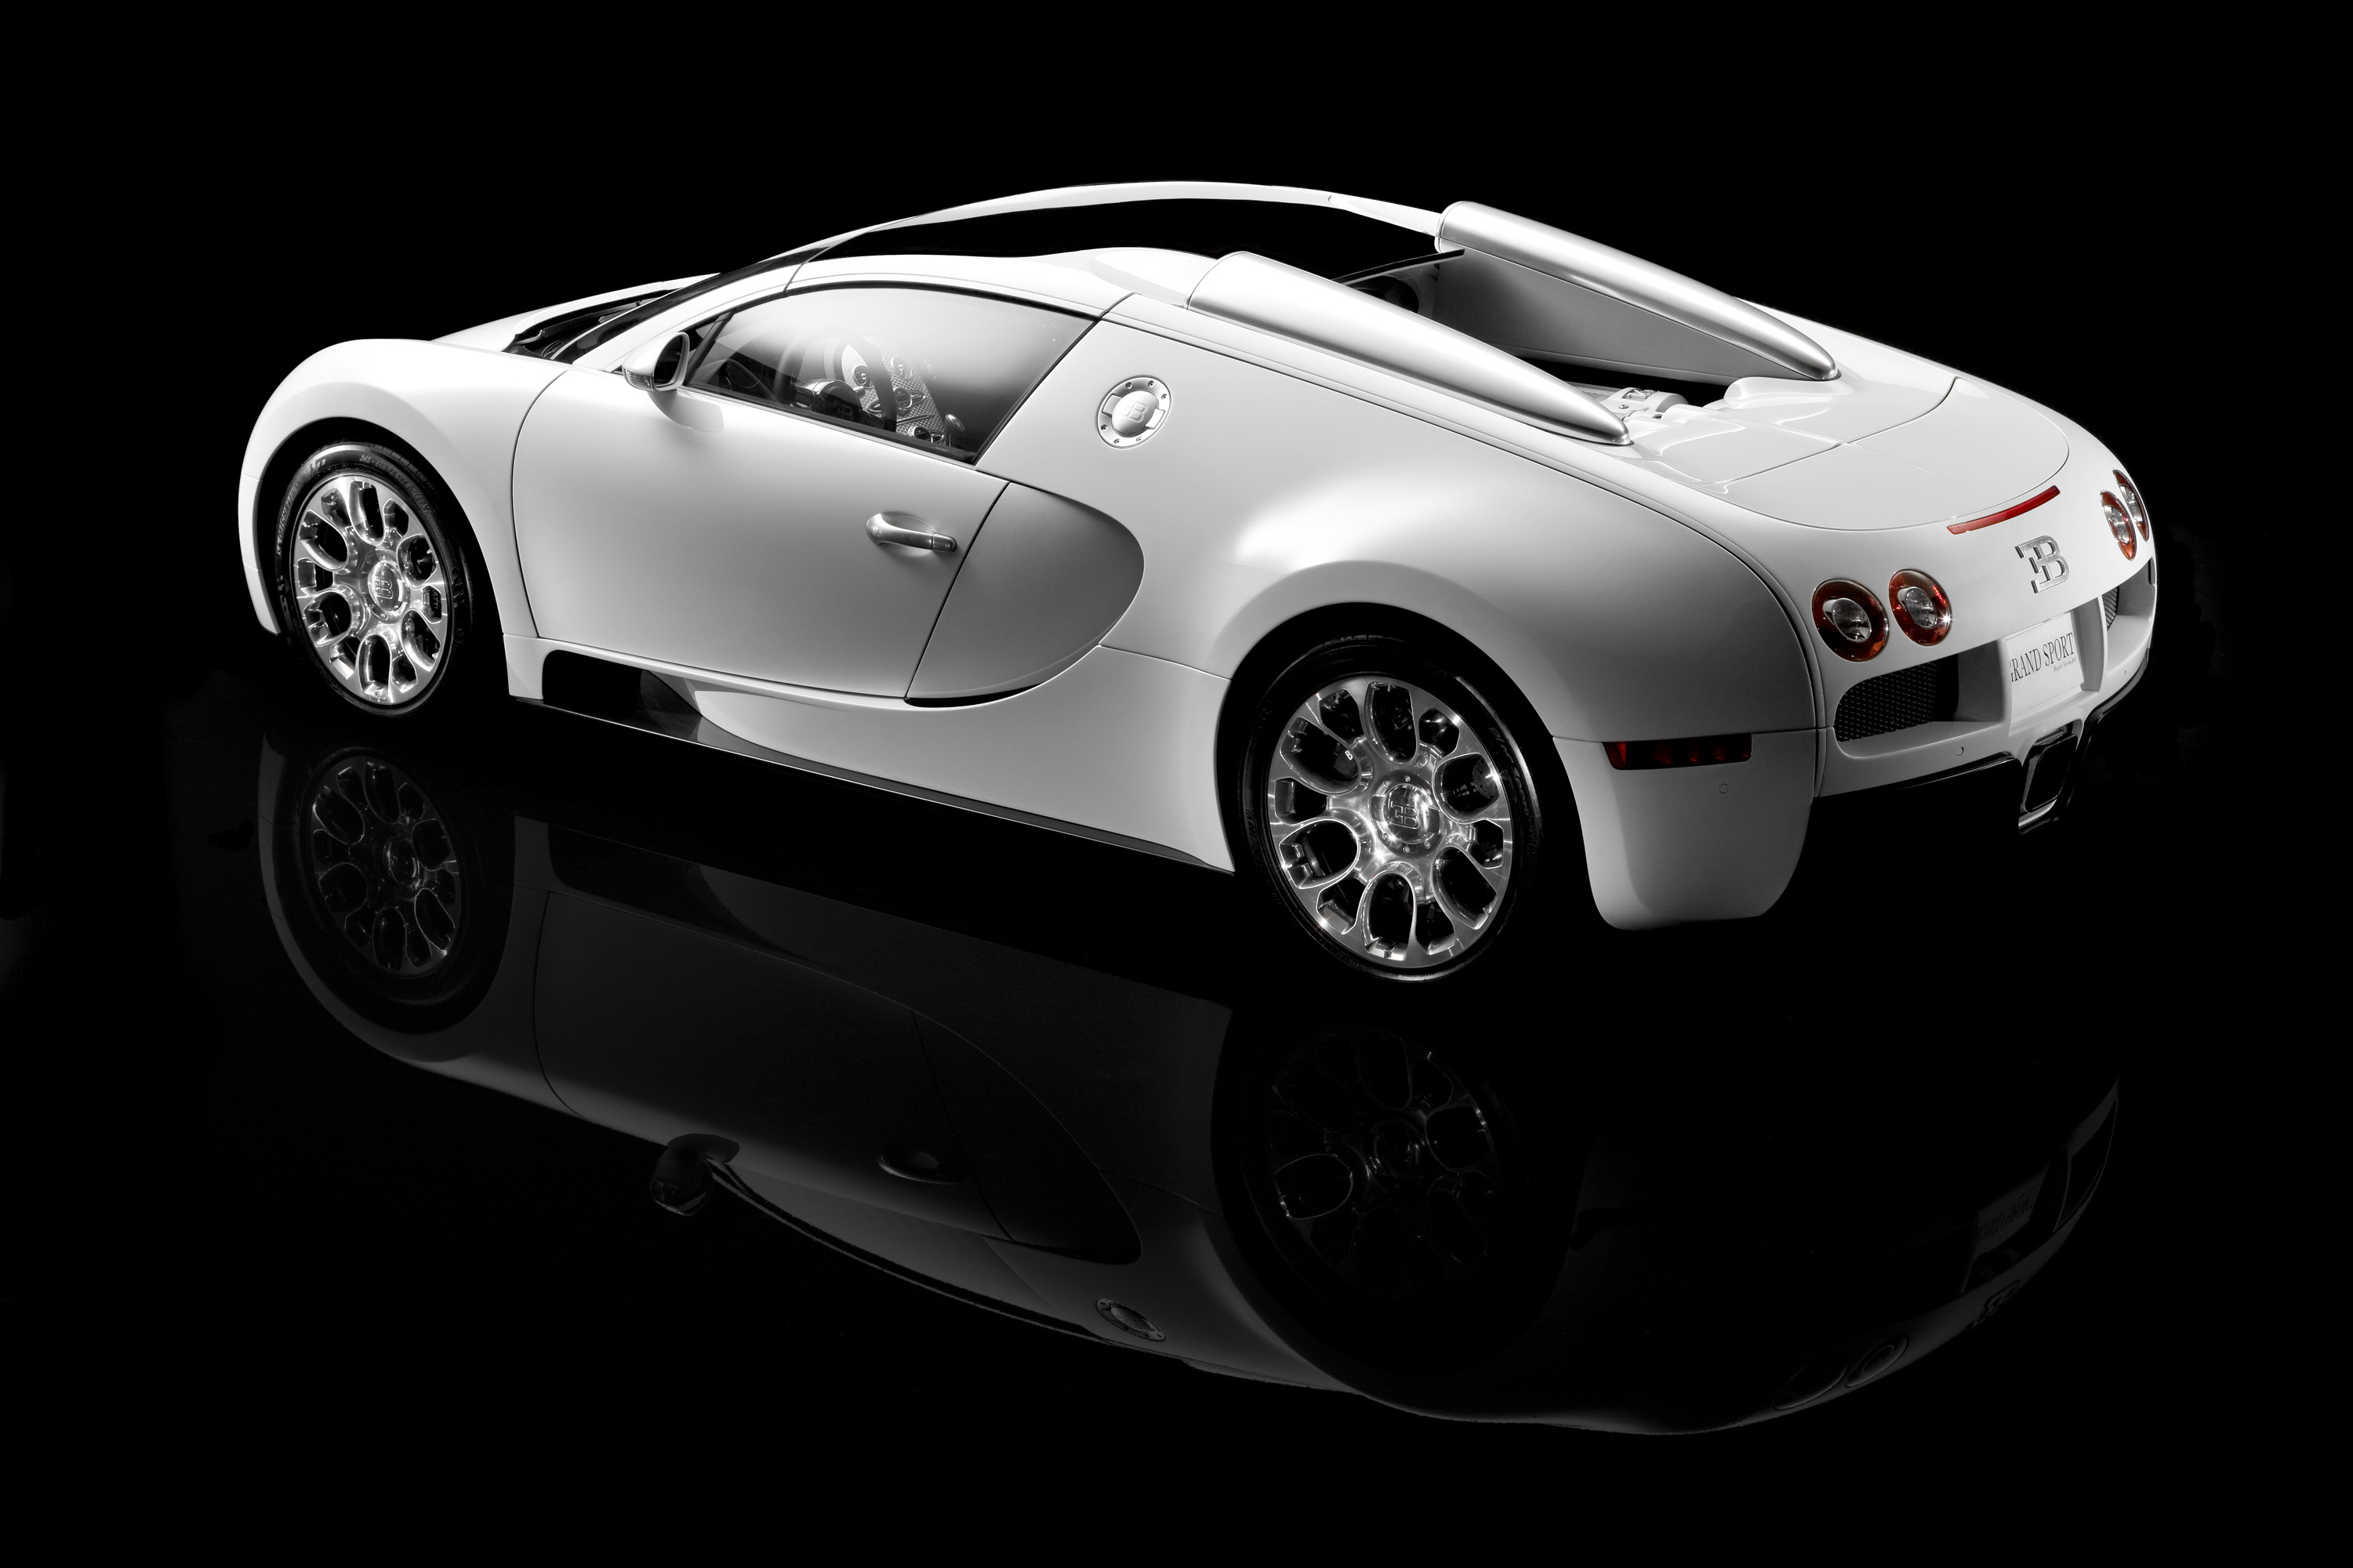 New Bugatti Veyron 16 4 Grand Sport